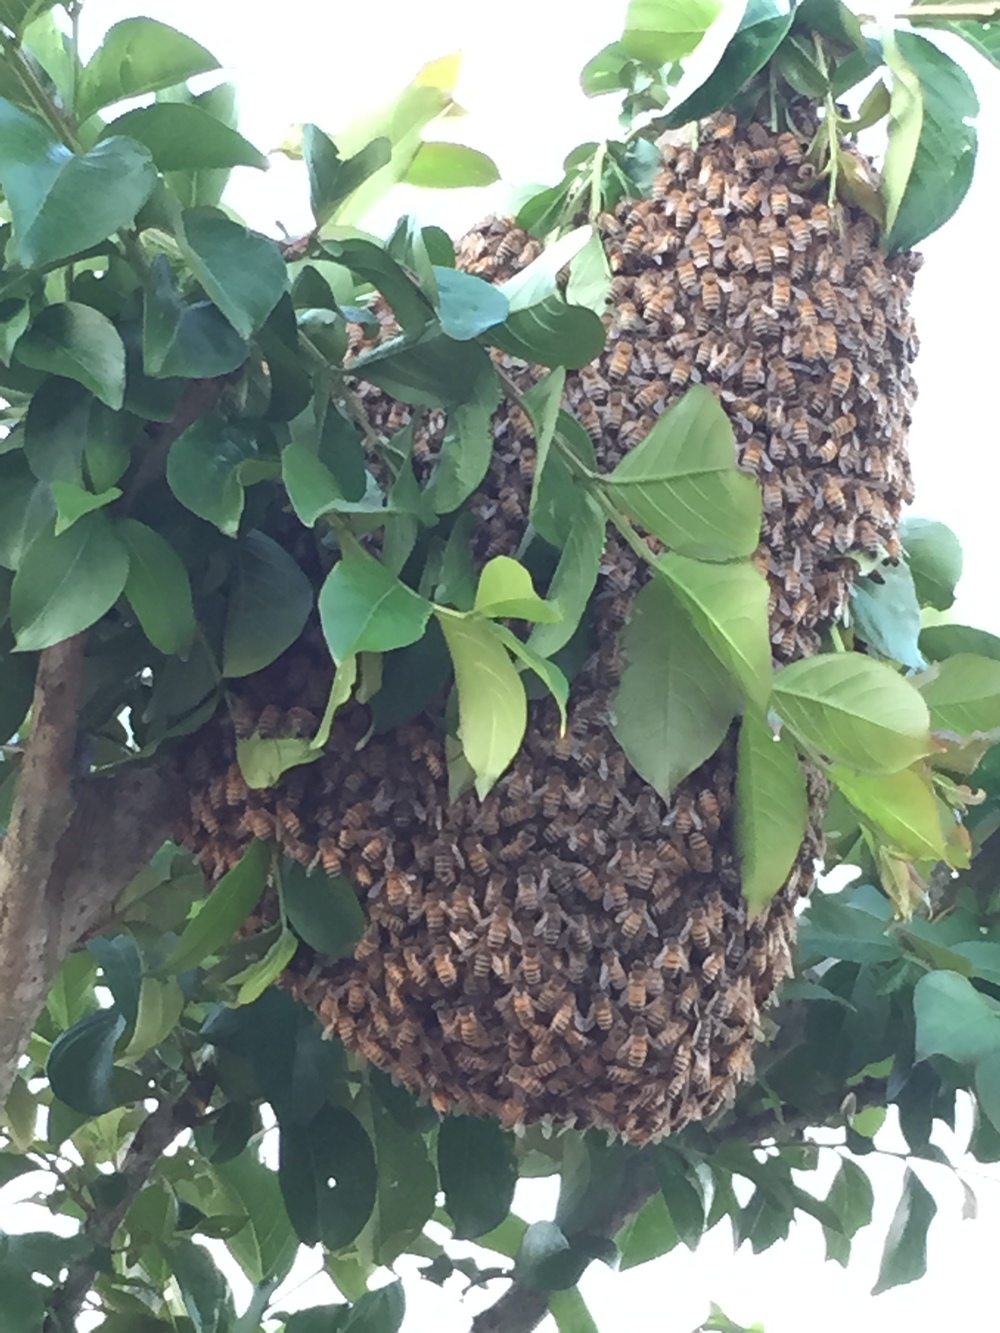 Cluster of honeybees